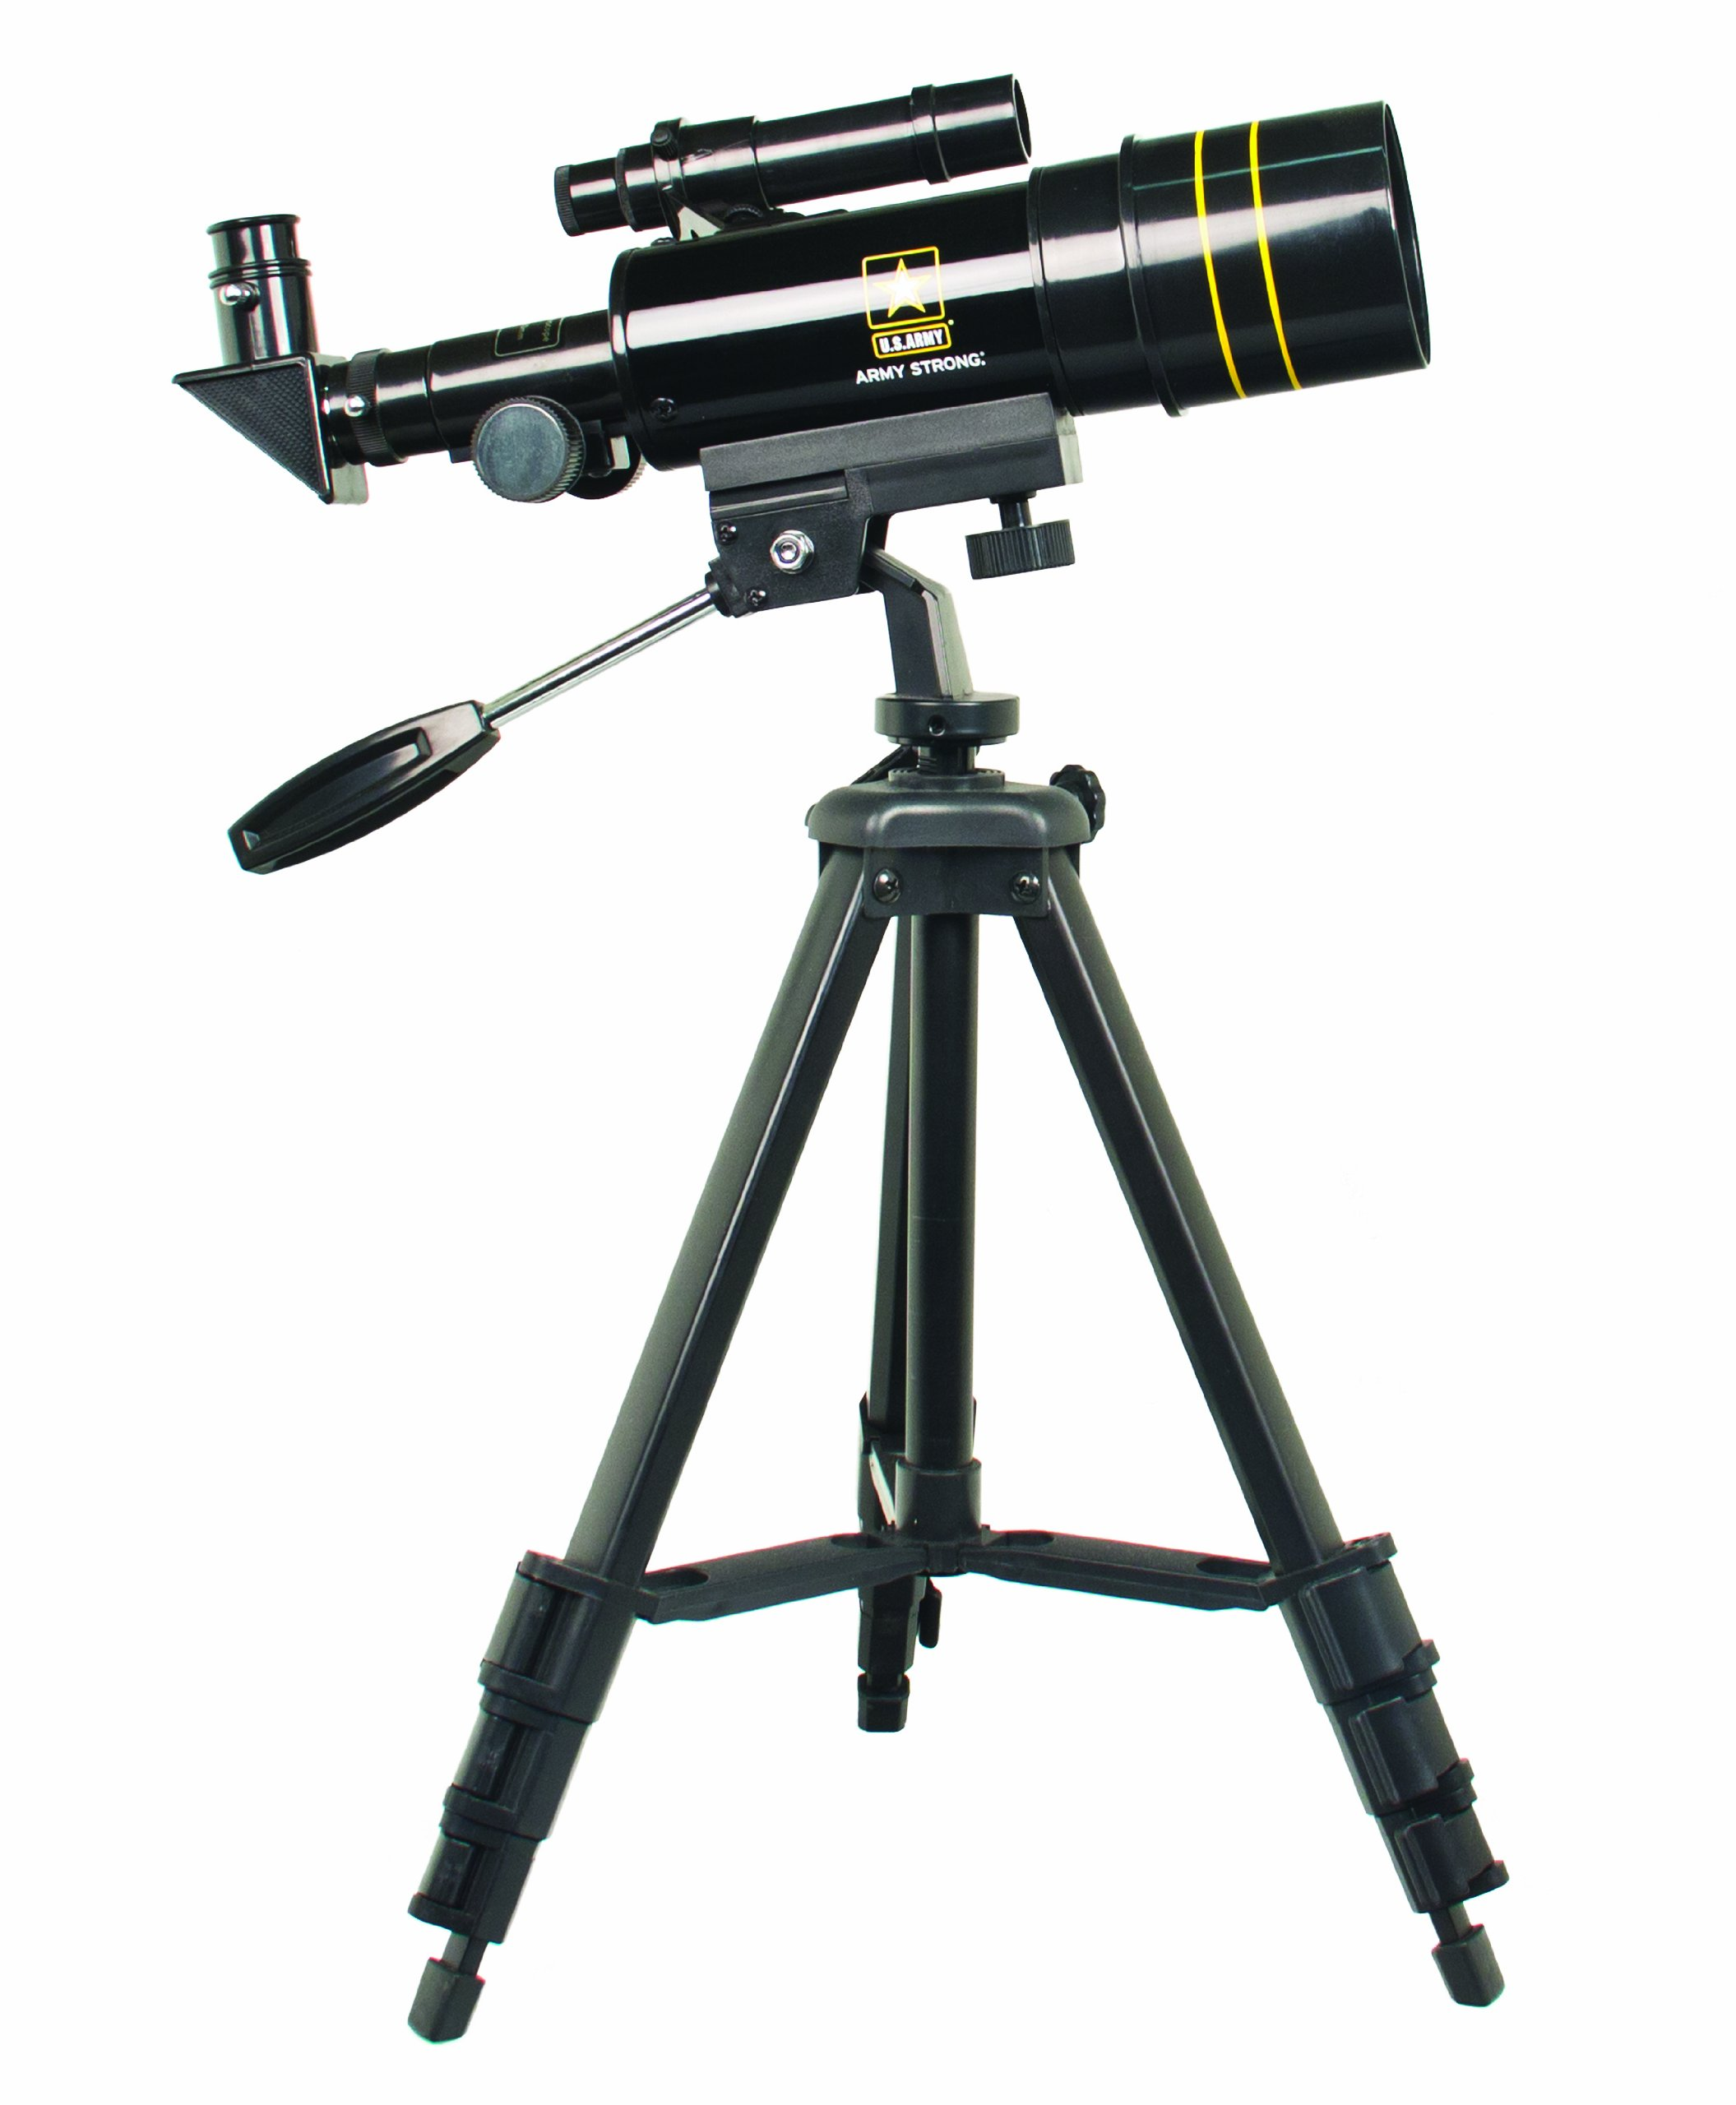 U.S. Army US-TF30060 Refractor Telescope 300x60 (Black) by U.S. Army